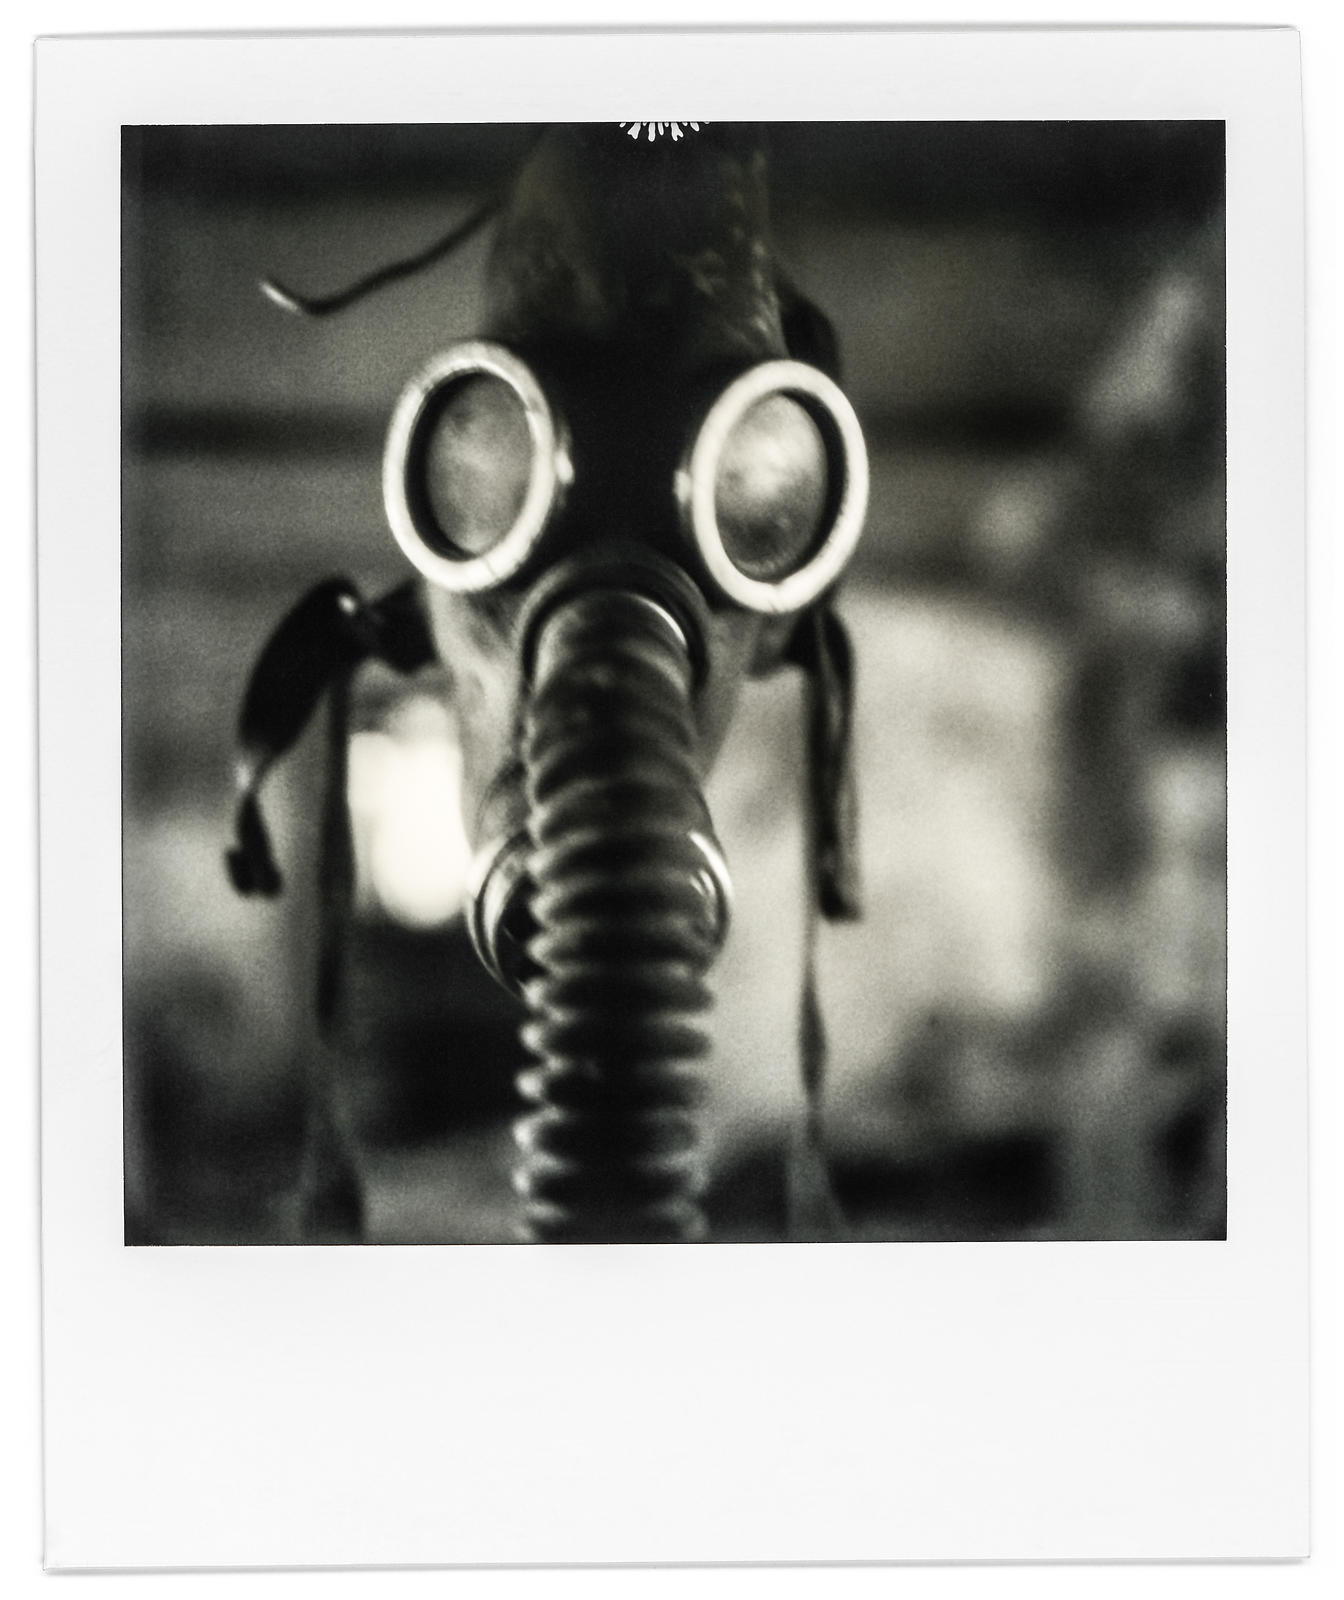 photo-polaroid-tchernobyl-chernobyl-5-2